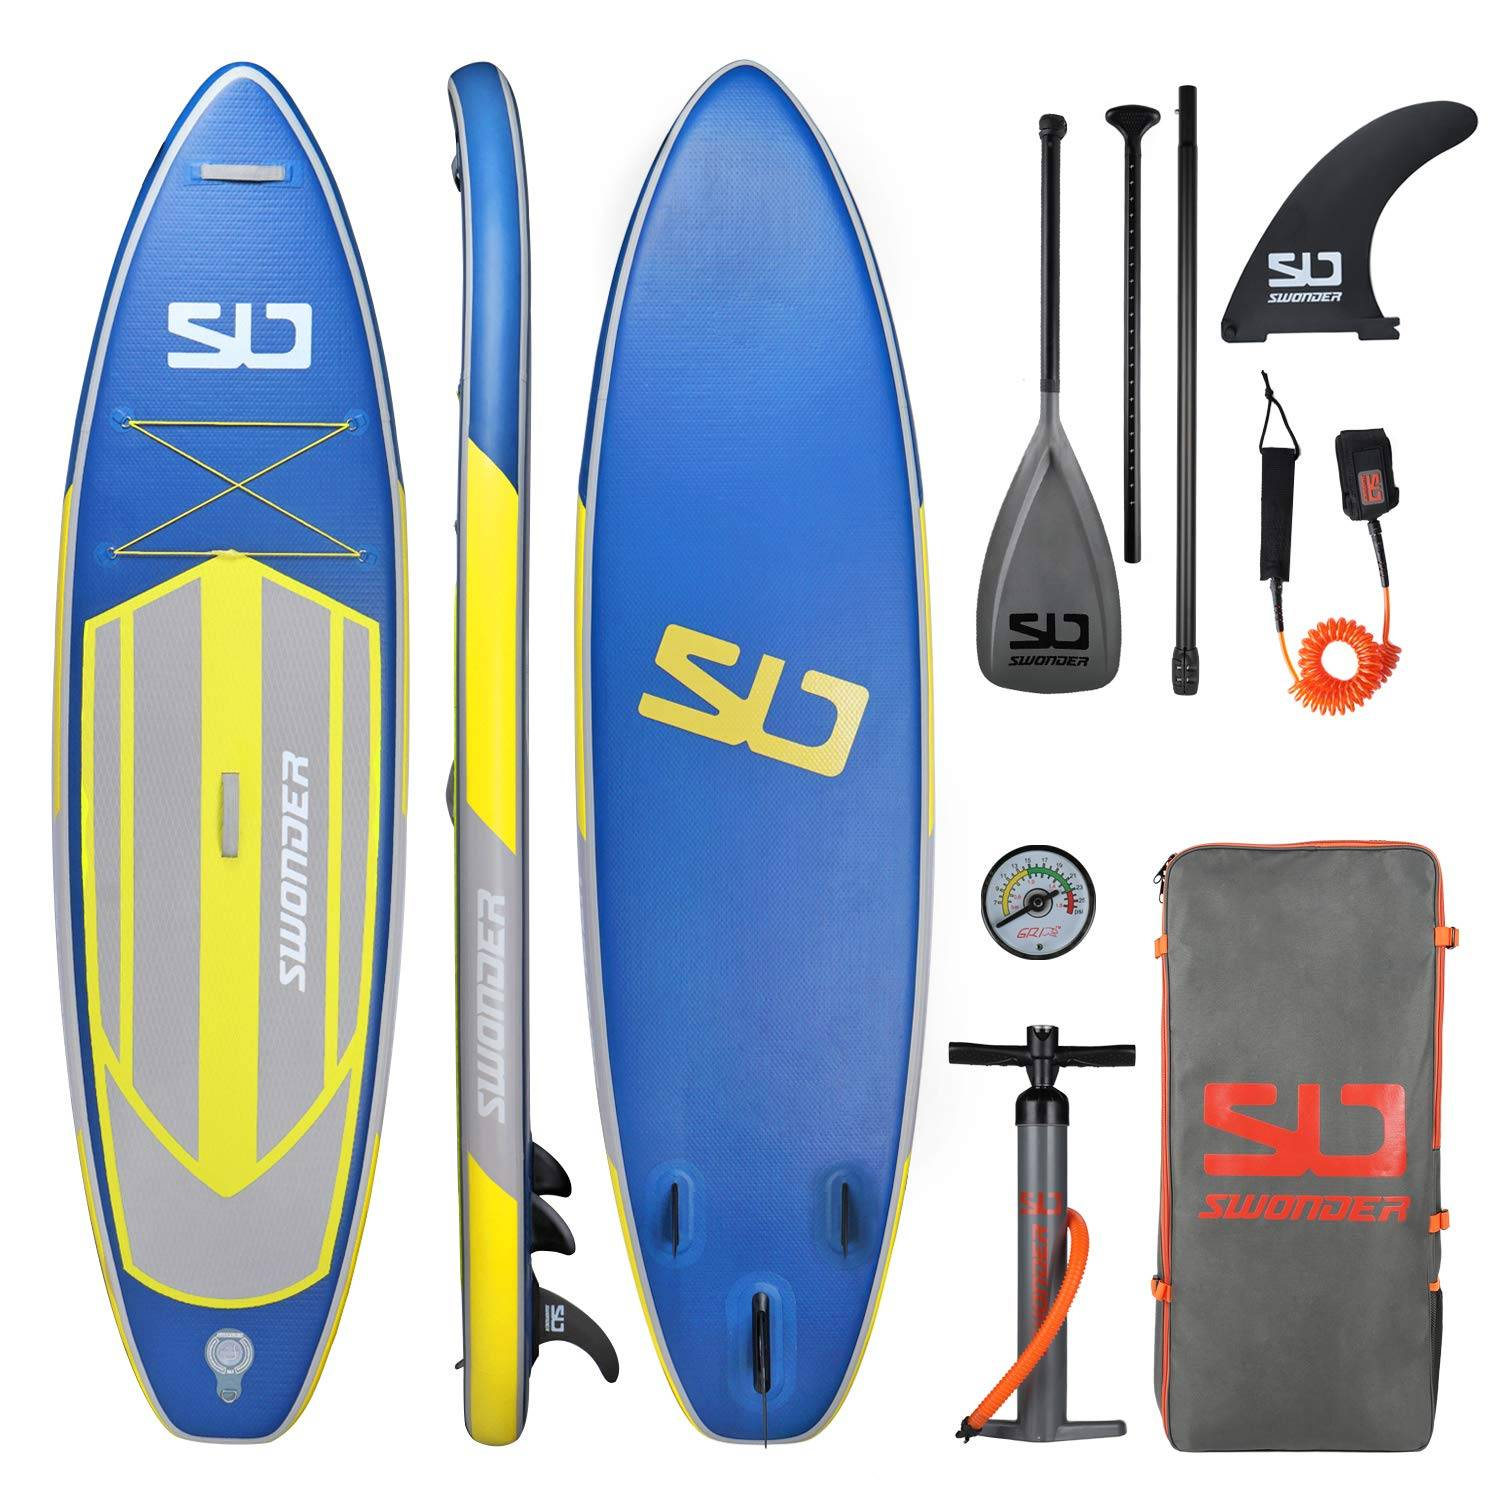 Swonder 11'6 Inflatable Stand Up Paddle Board